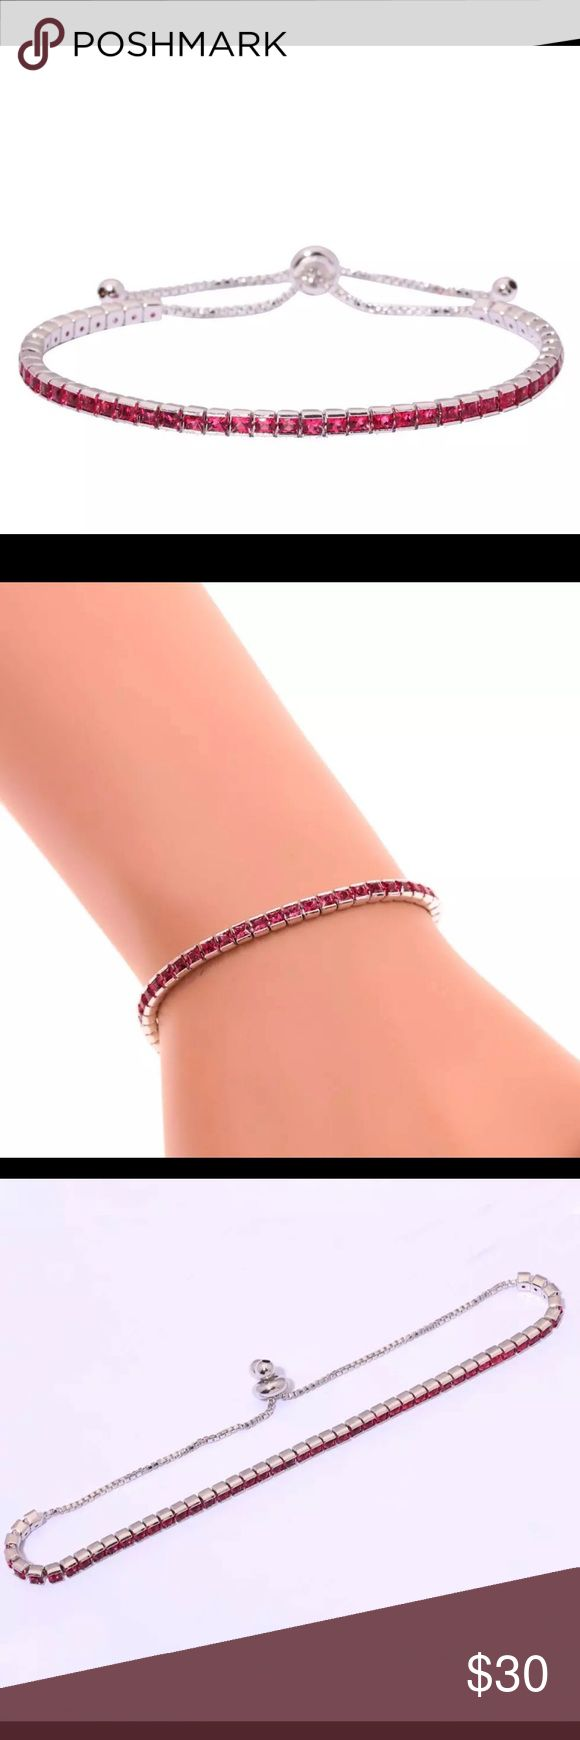 ❗️SALE❗️Kunzite CZ Silver adjustable bracelet Stunning!!! Kunzite CZ Silver Filled fashion adjustable chain bracelet Jewelry Bracelets